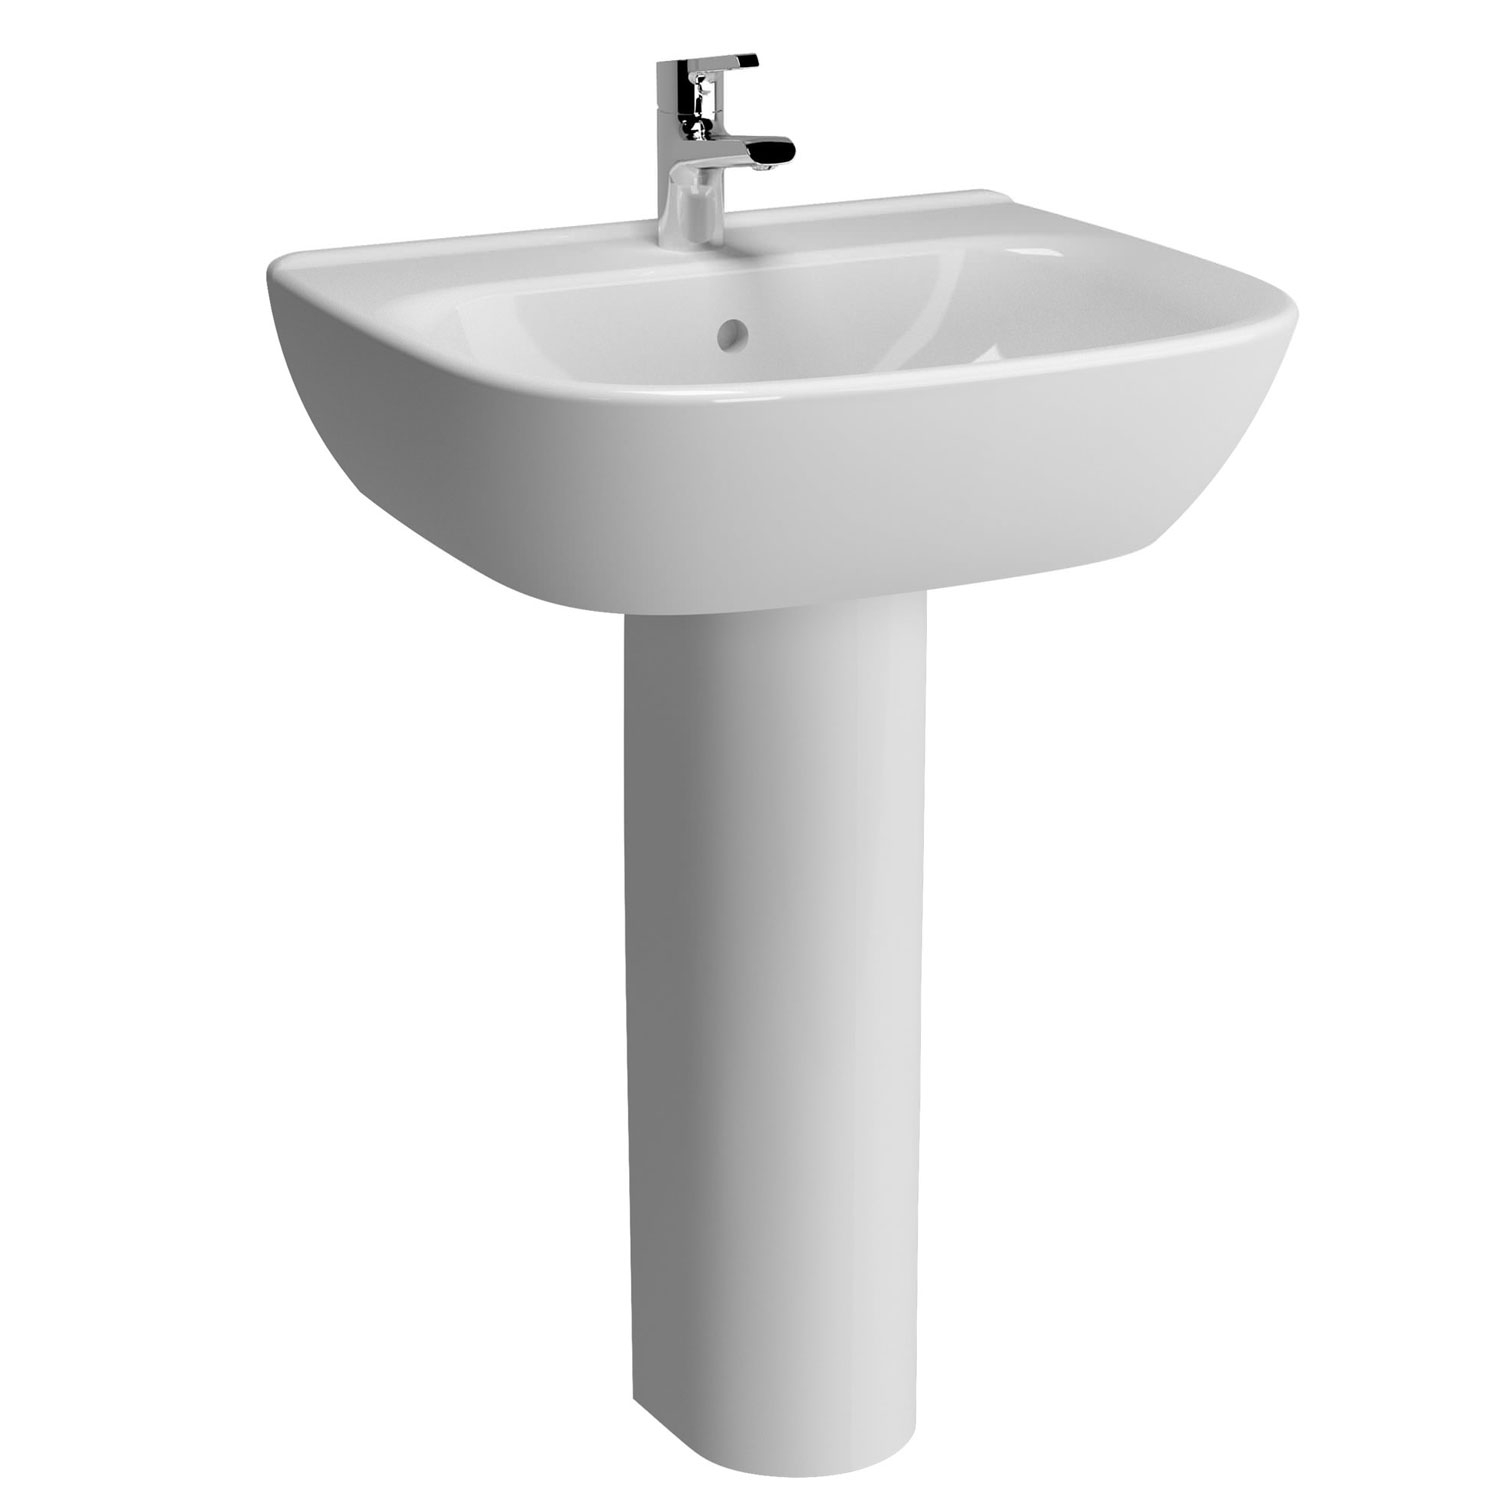 Vitra Zentrum Wash Basin and Full Pedestal 650mm Wide 1 Tap Hole